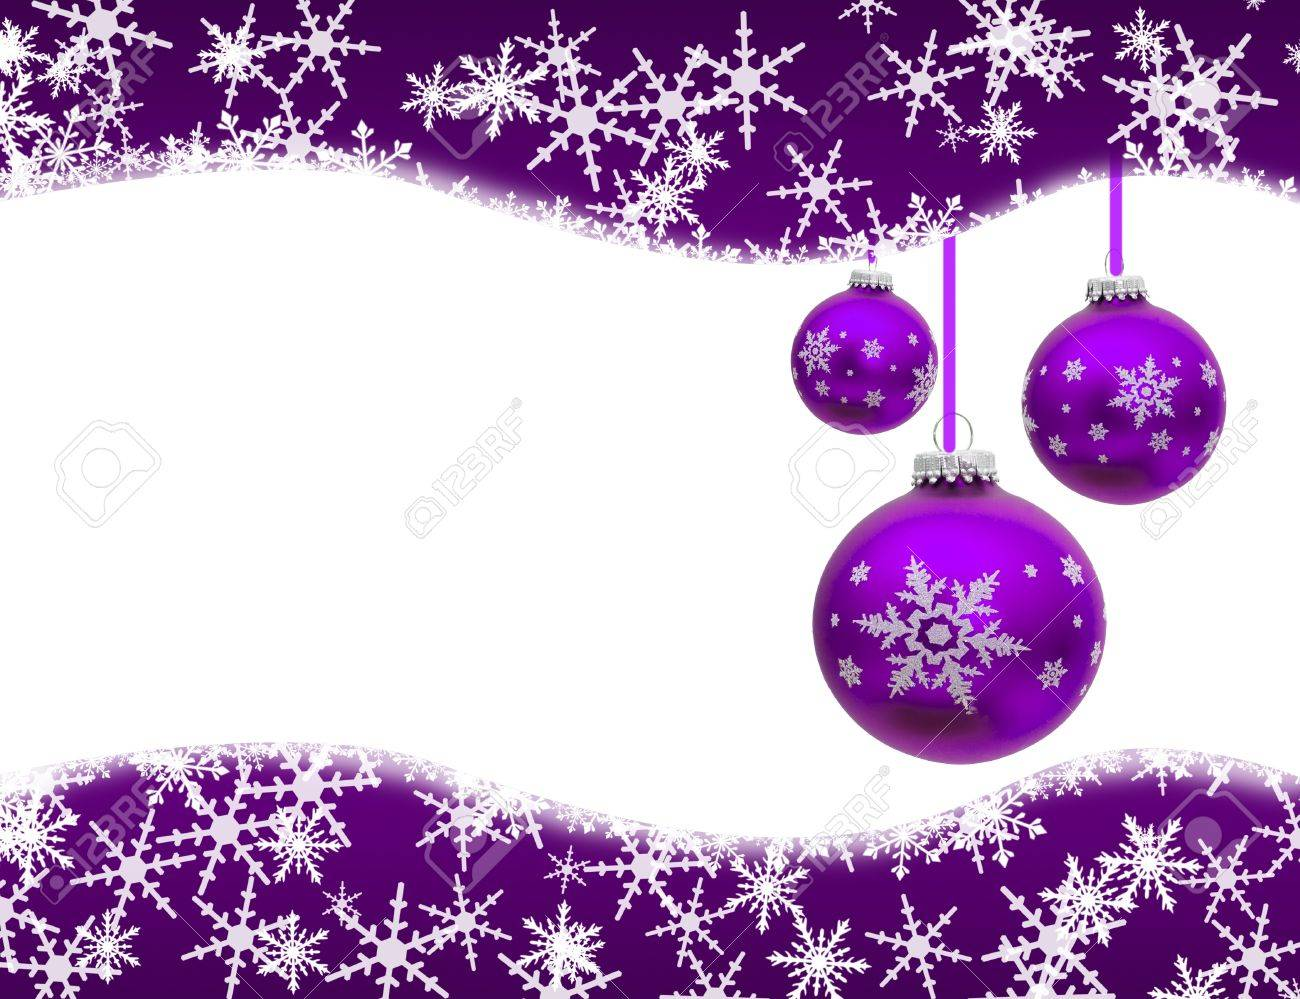 Lavender christmas ornaments - Christmas Ornaments And Snowflake Border Isolated On White Christmas Time Stock Photo 11558187